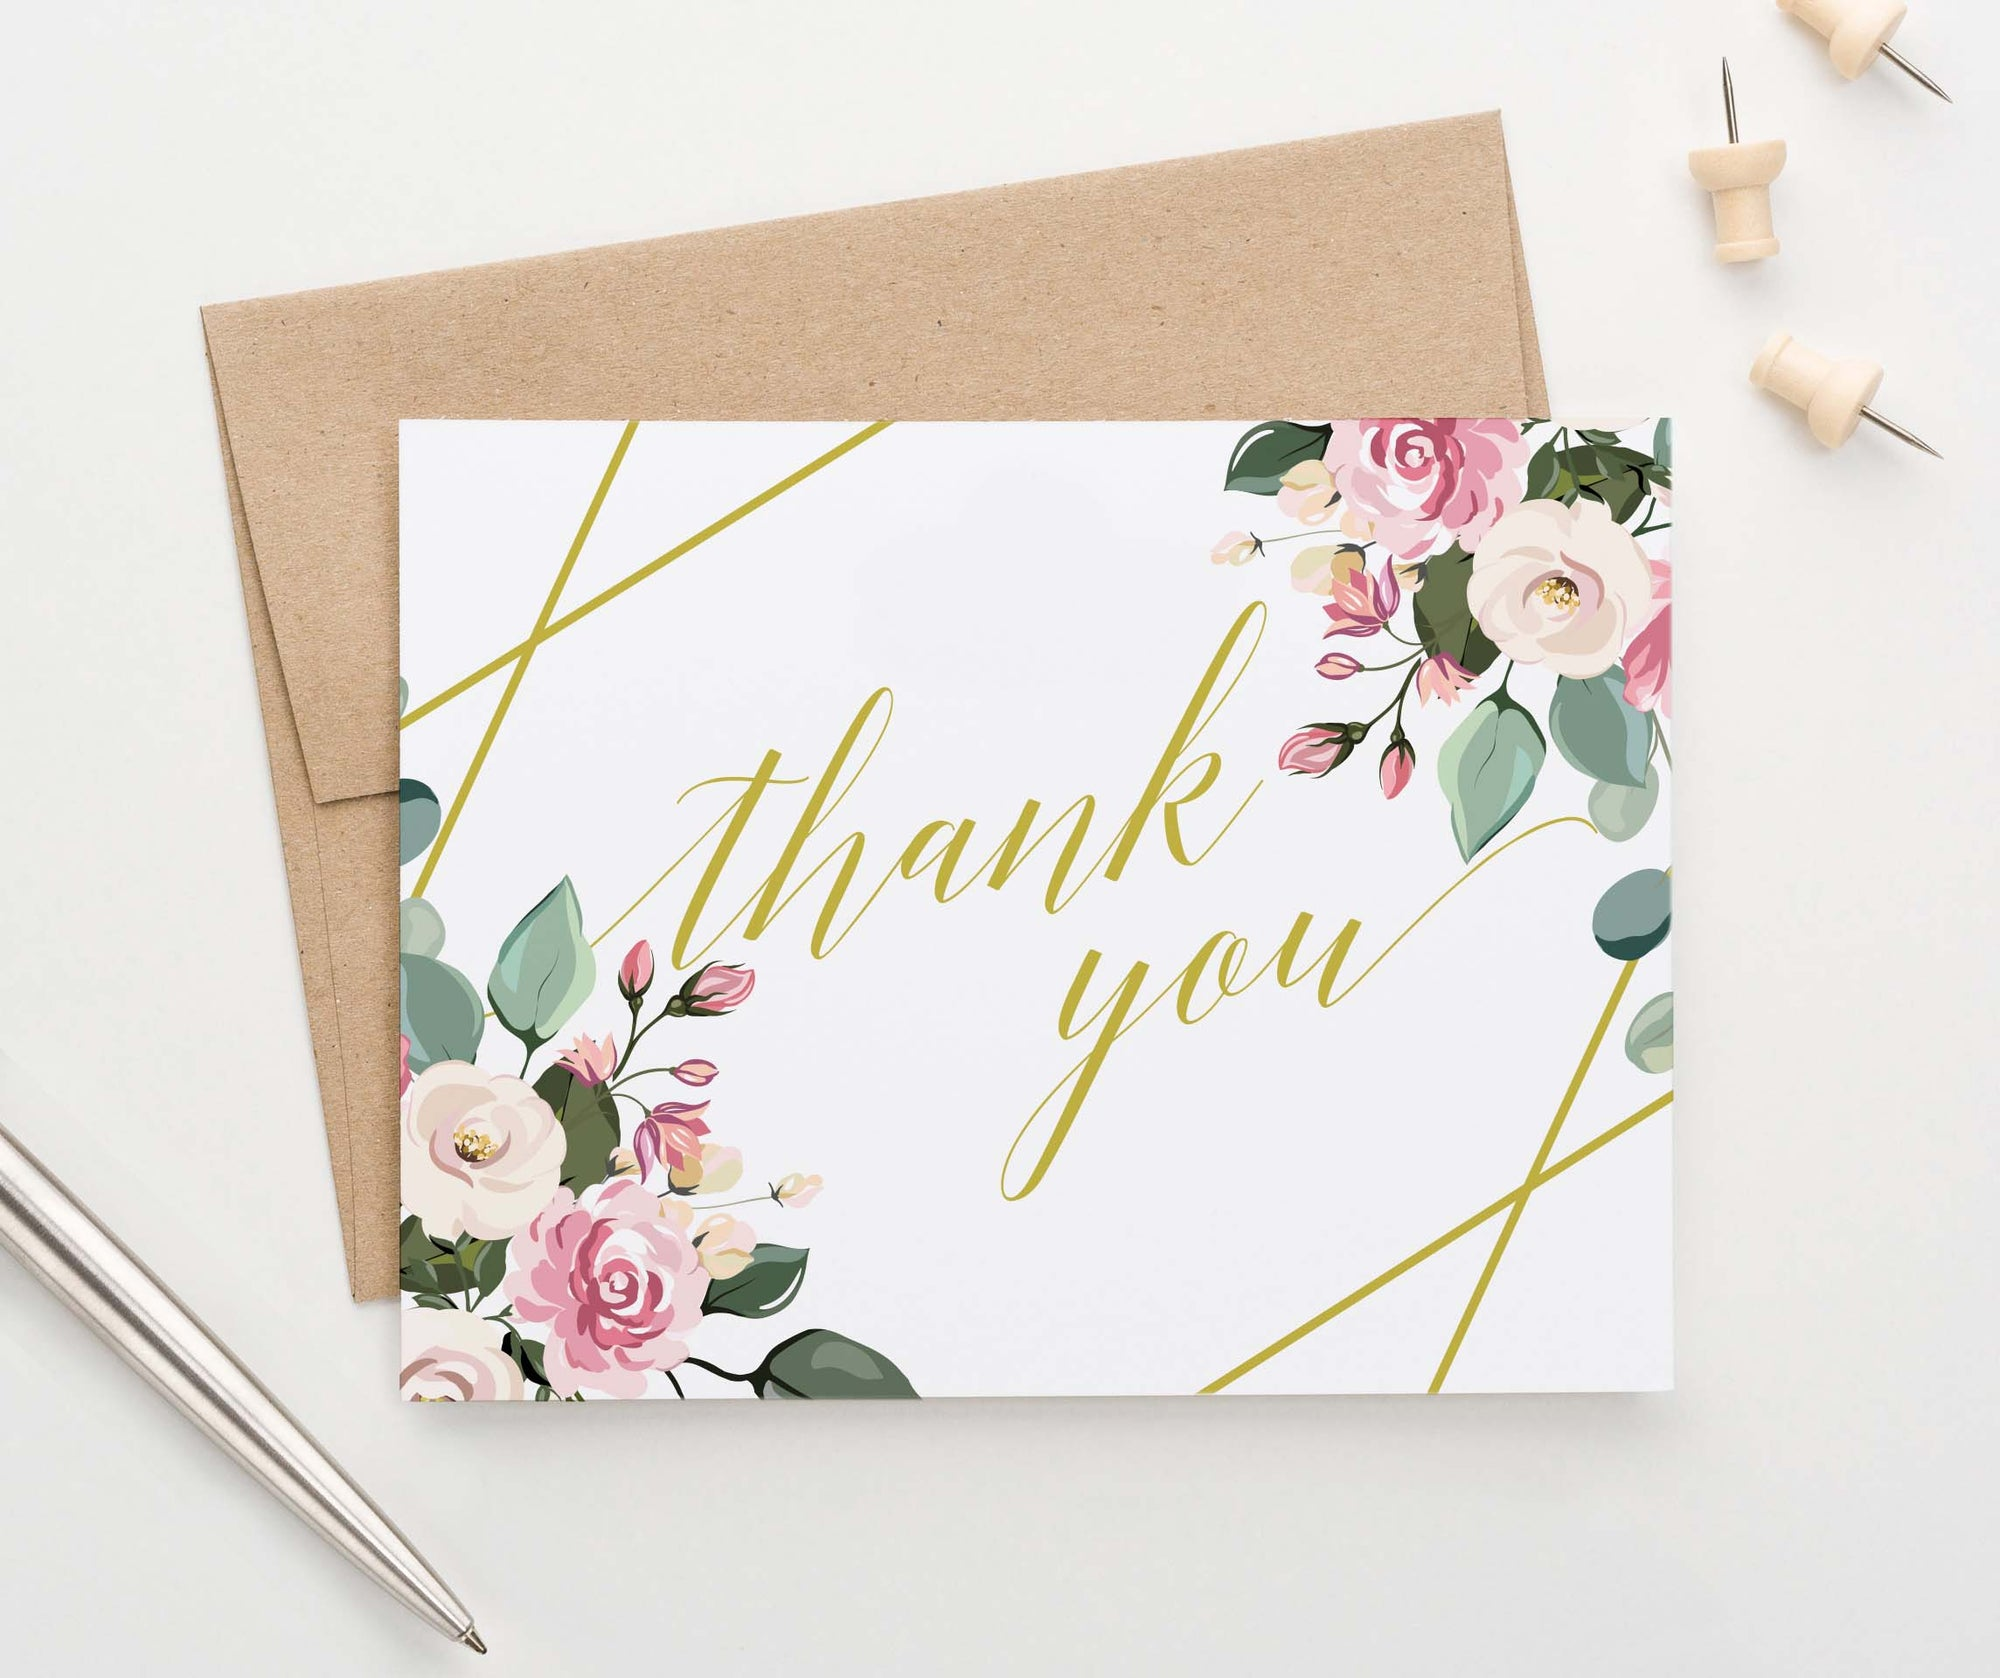 TY020 floral gold geometric thank you notes for baby shower elegant script